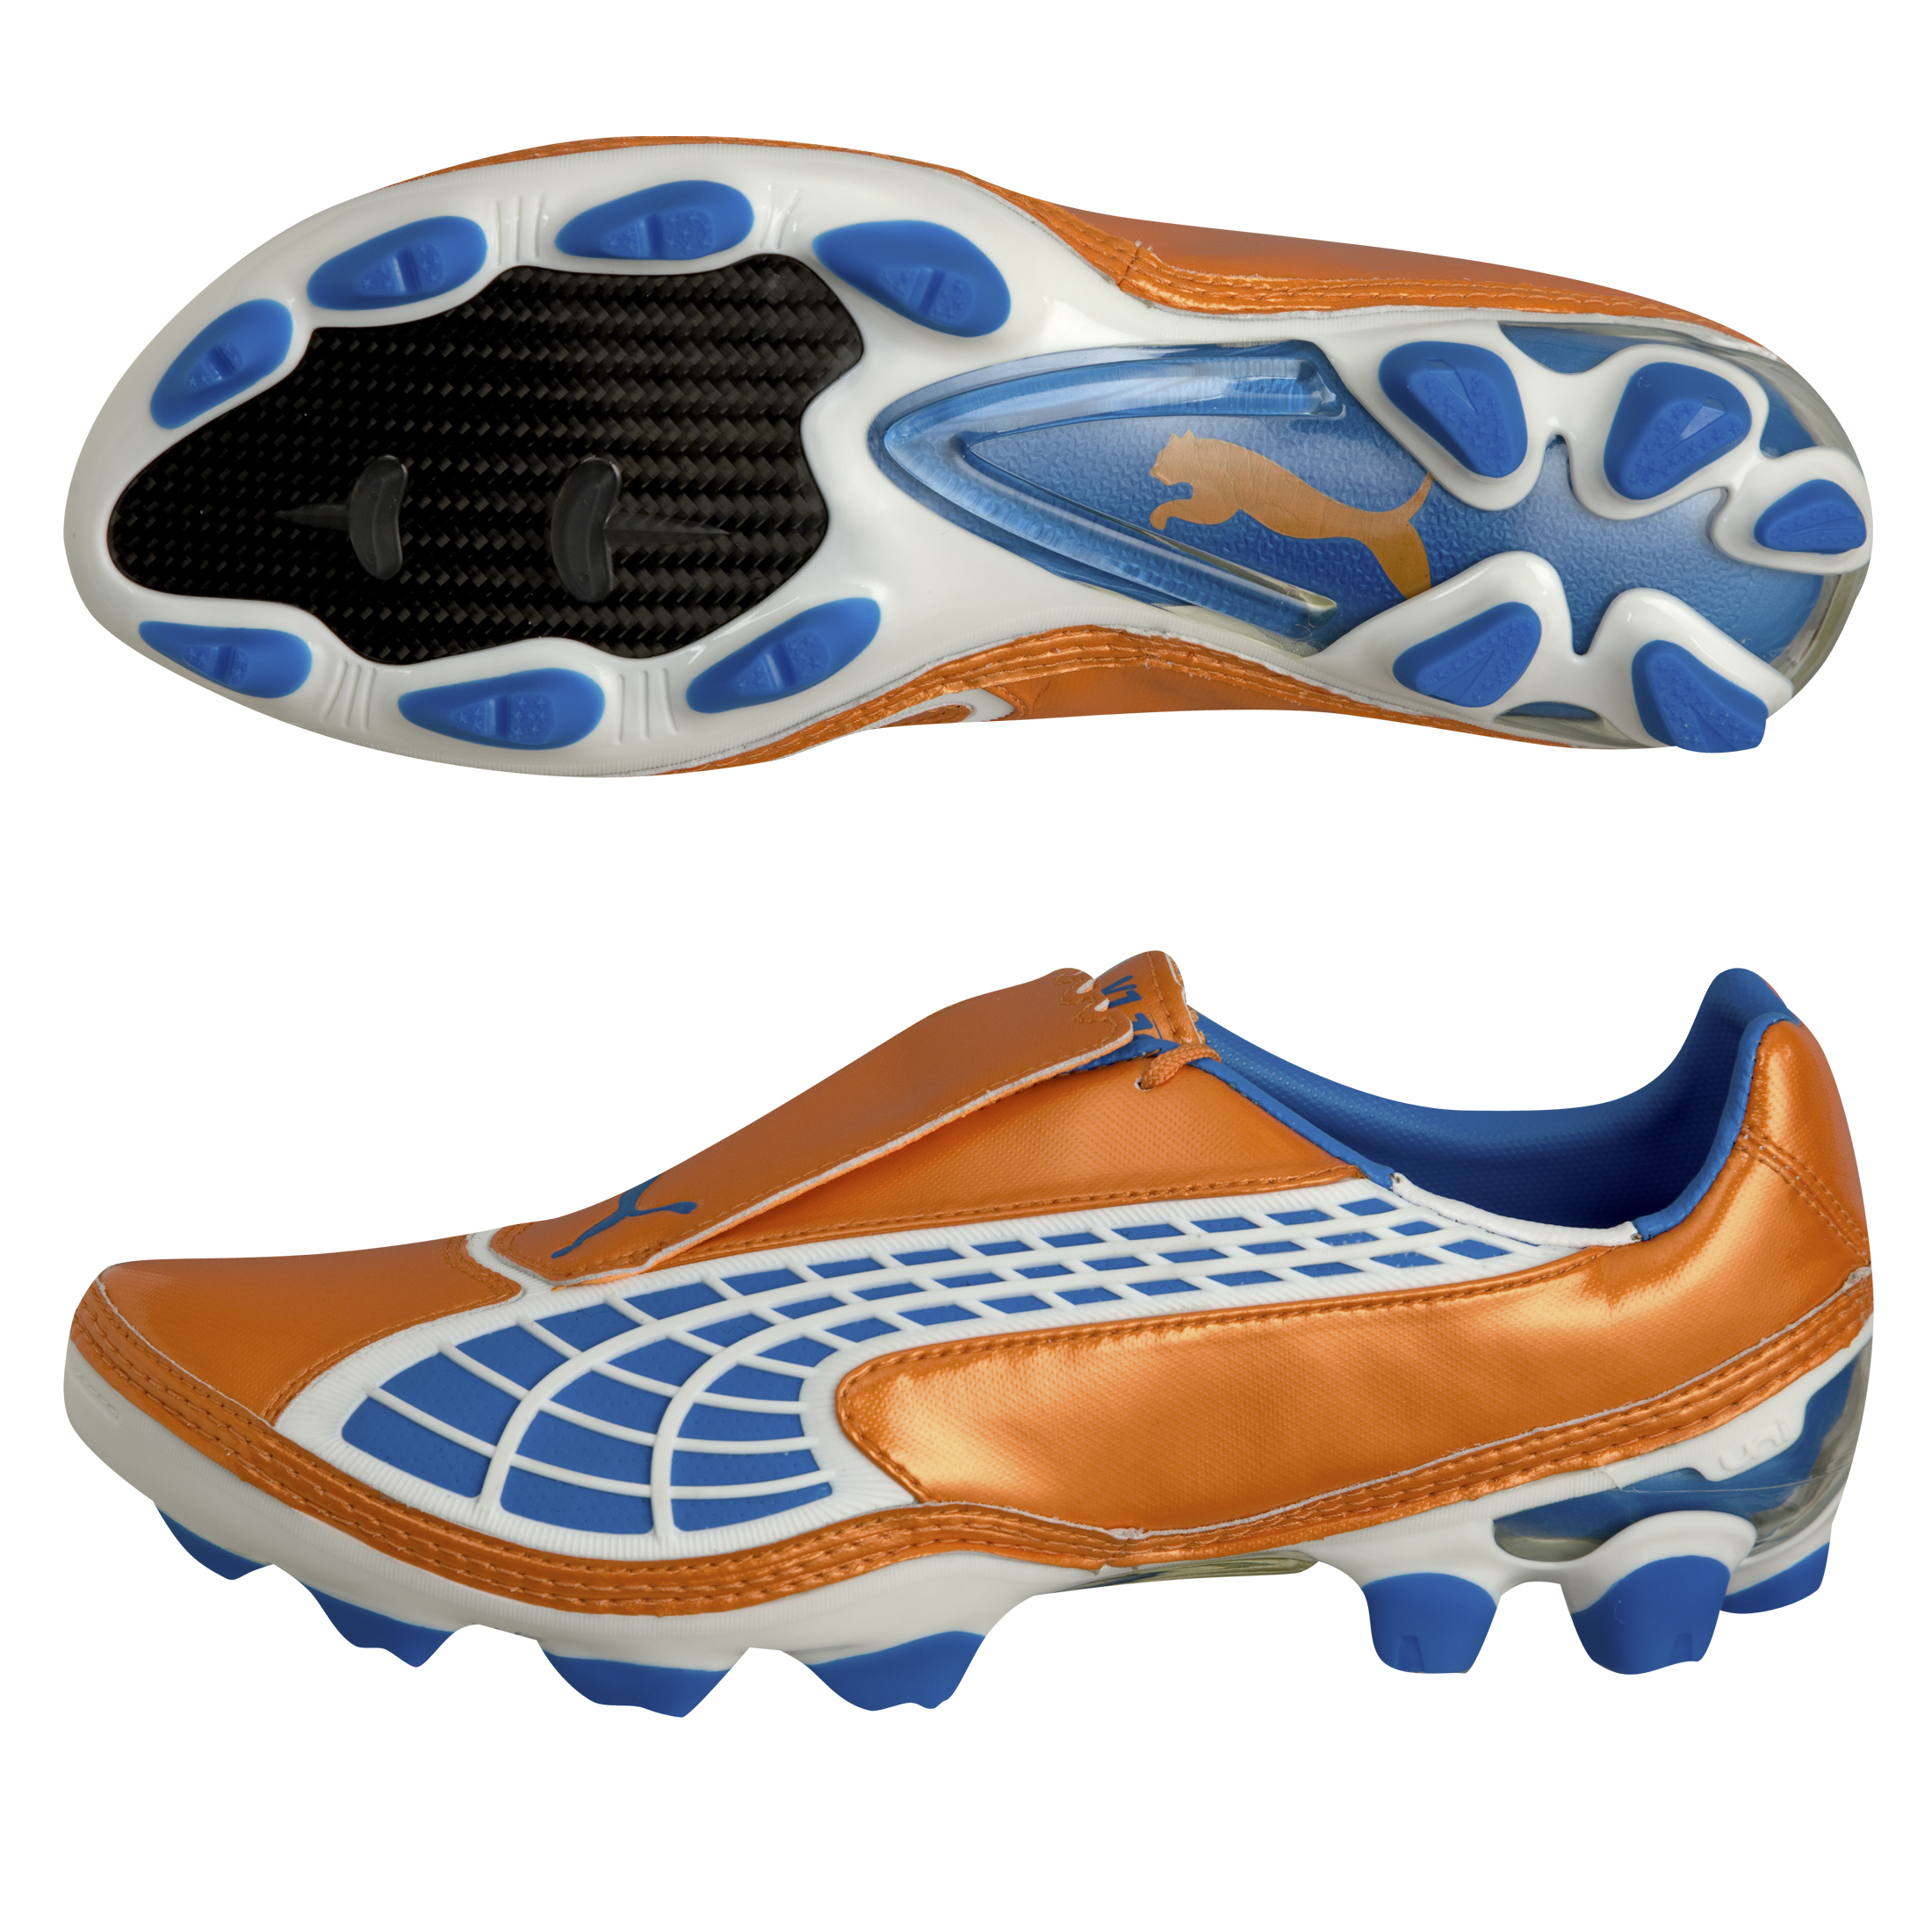 Puma V1.10 II I Firm Ground Football Boots - Fluoescent Orange/Blue Aster/White